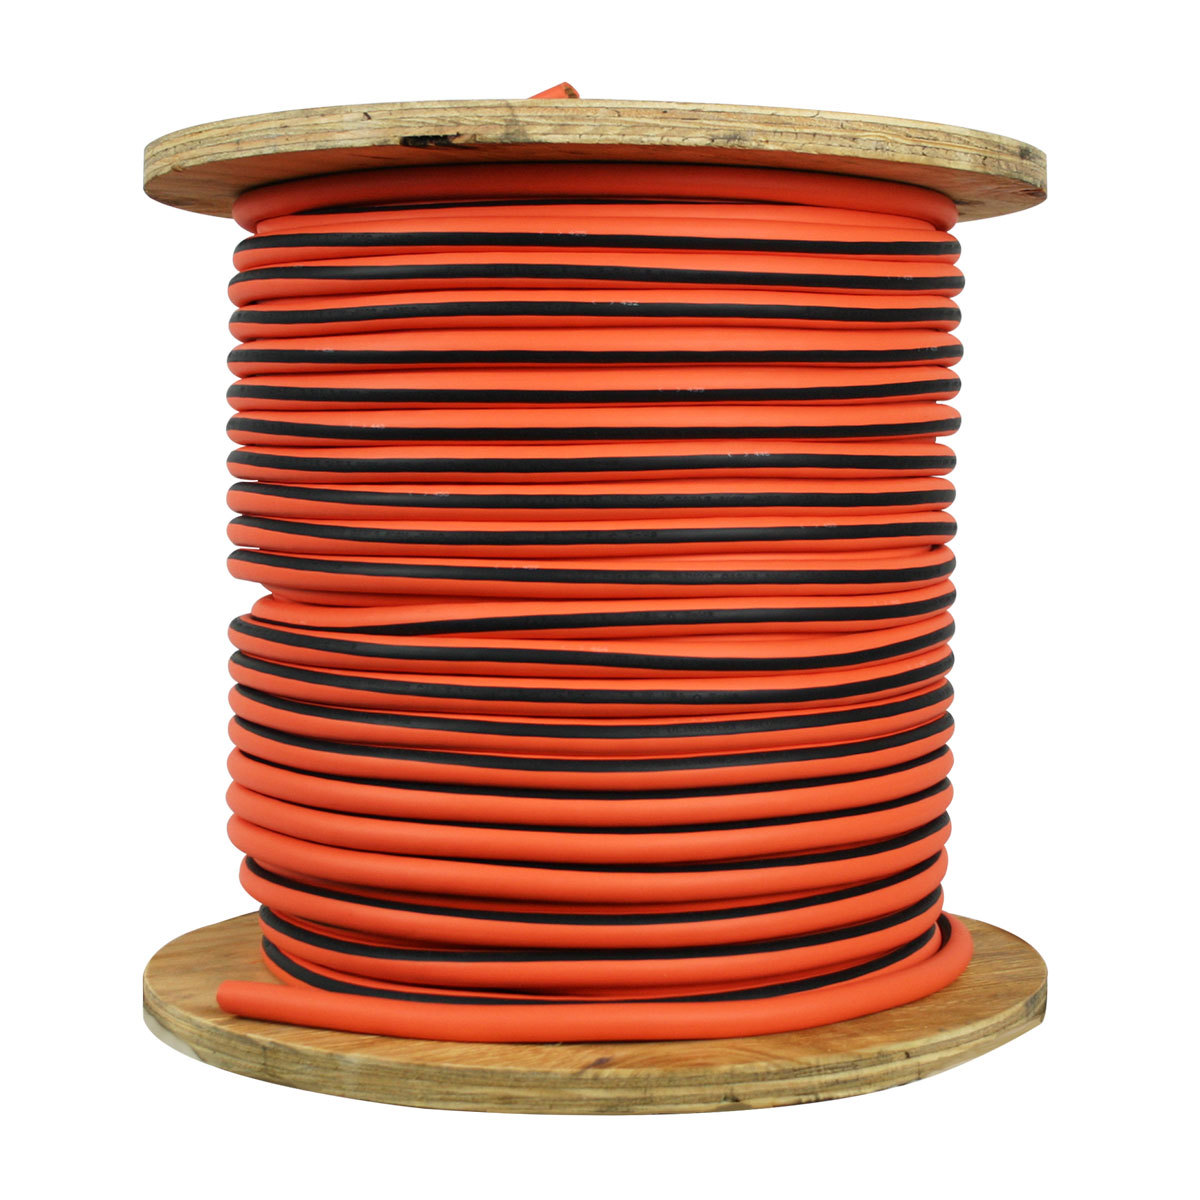 Airgas - DIRUF1-250OR - Direct™ Wire & Cable #1 Orange Ultra-Flex ...